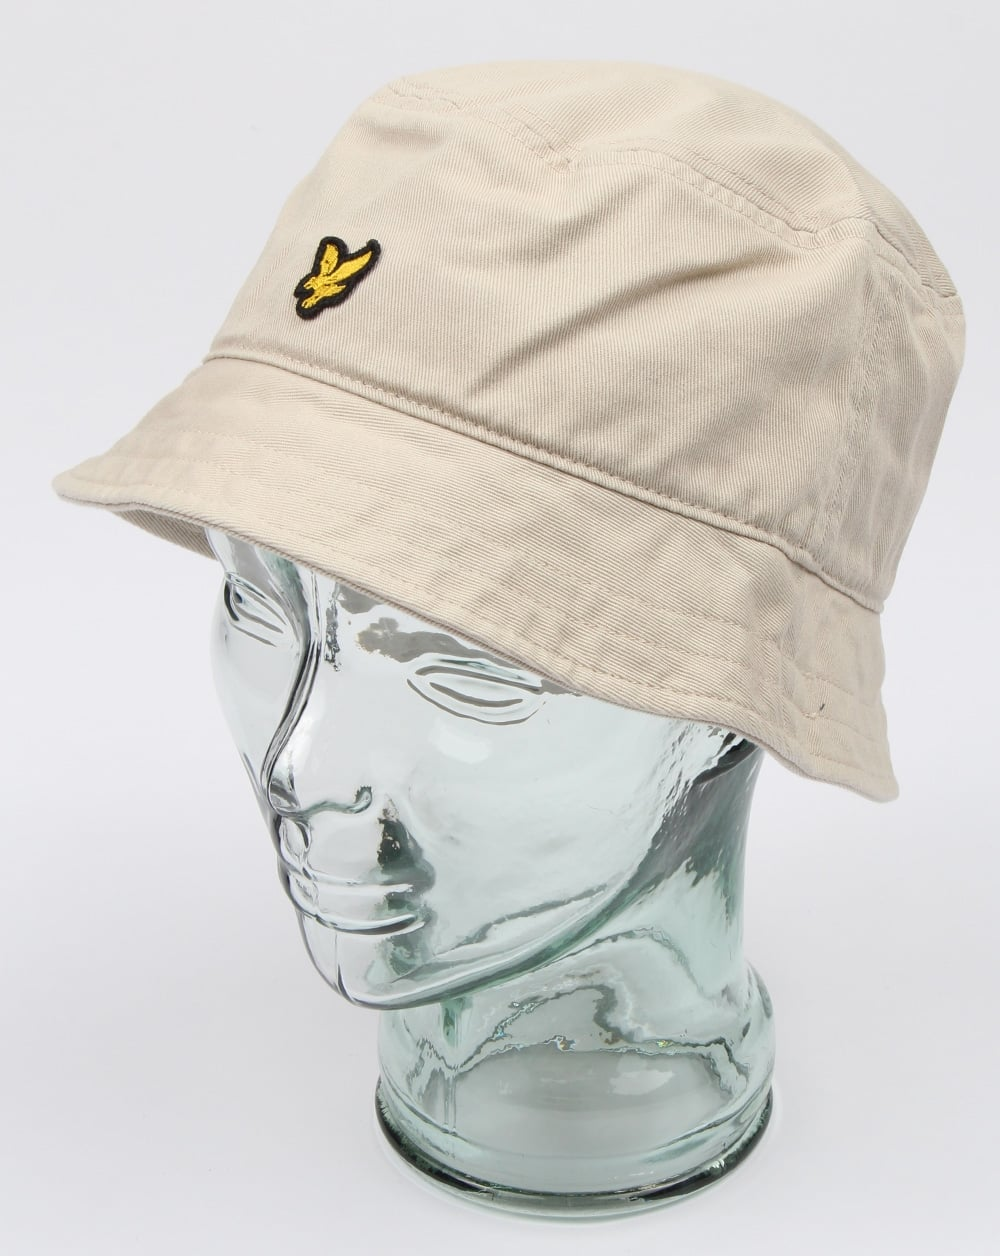 904ed48a75a Lyle and Scott Lyle And Scott Bucket Hat Light Stone